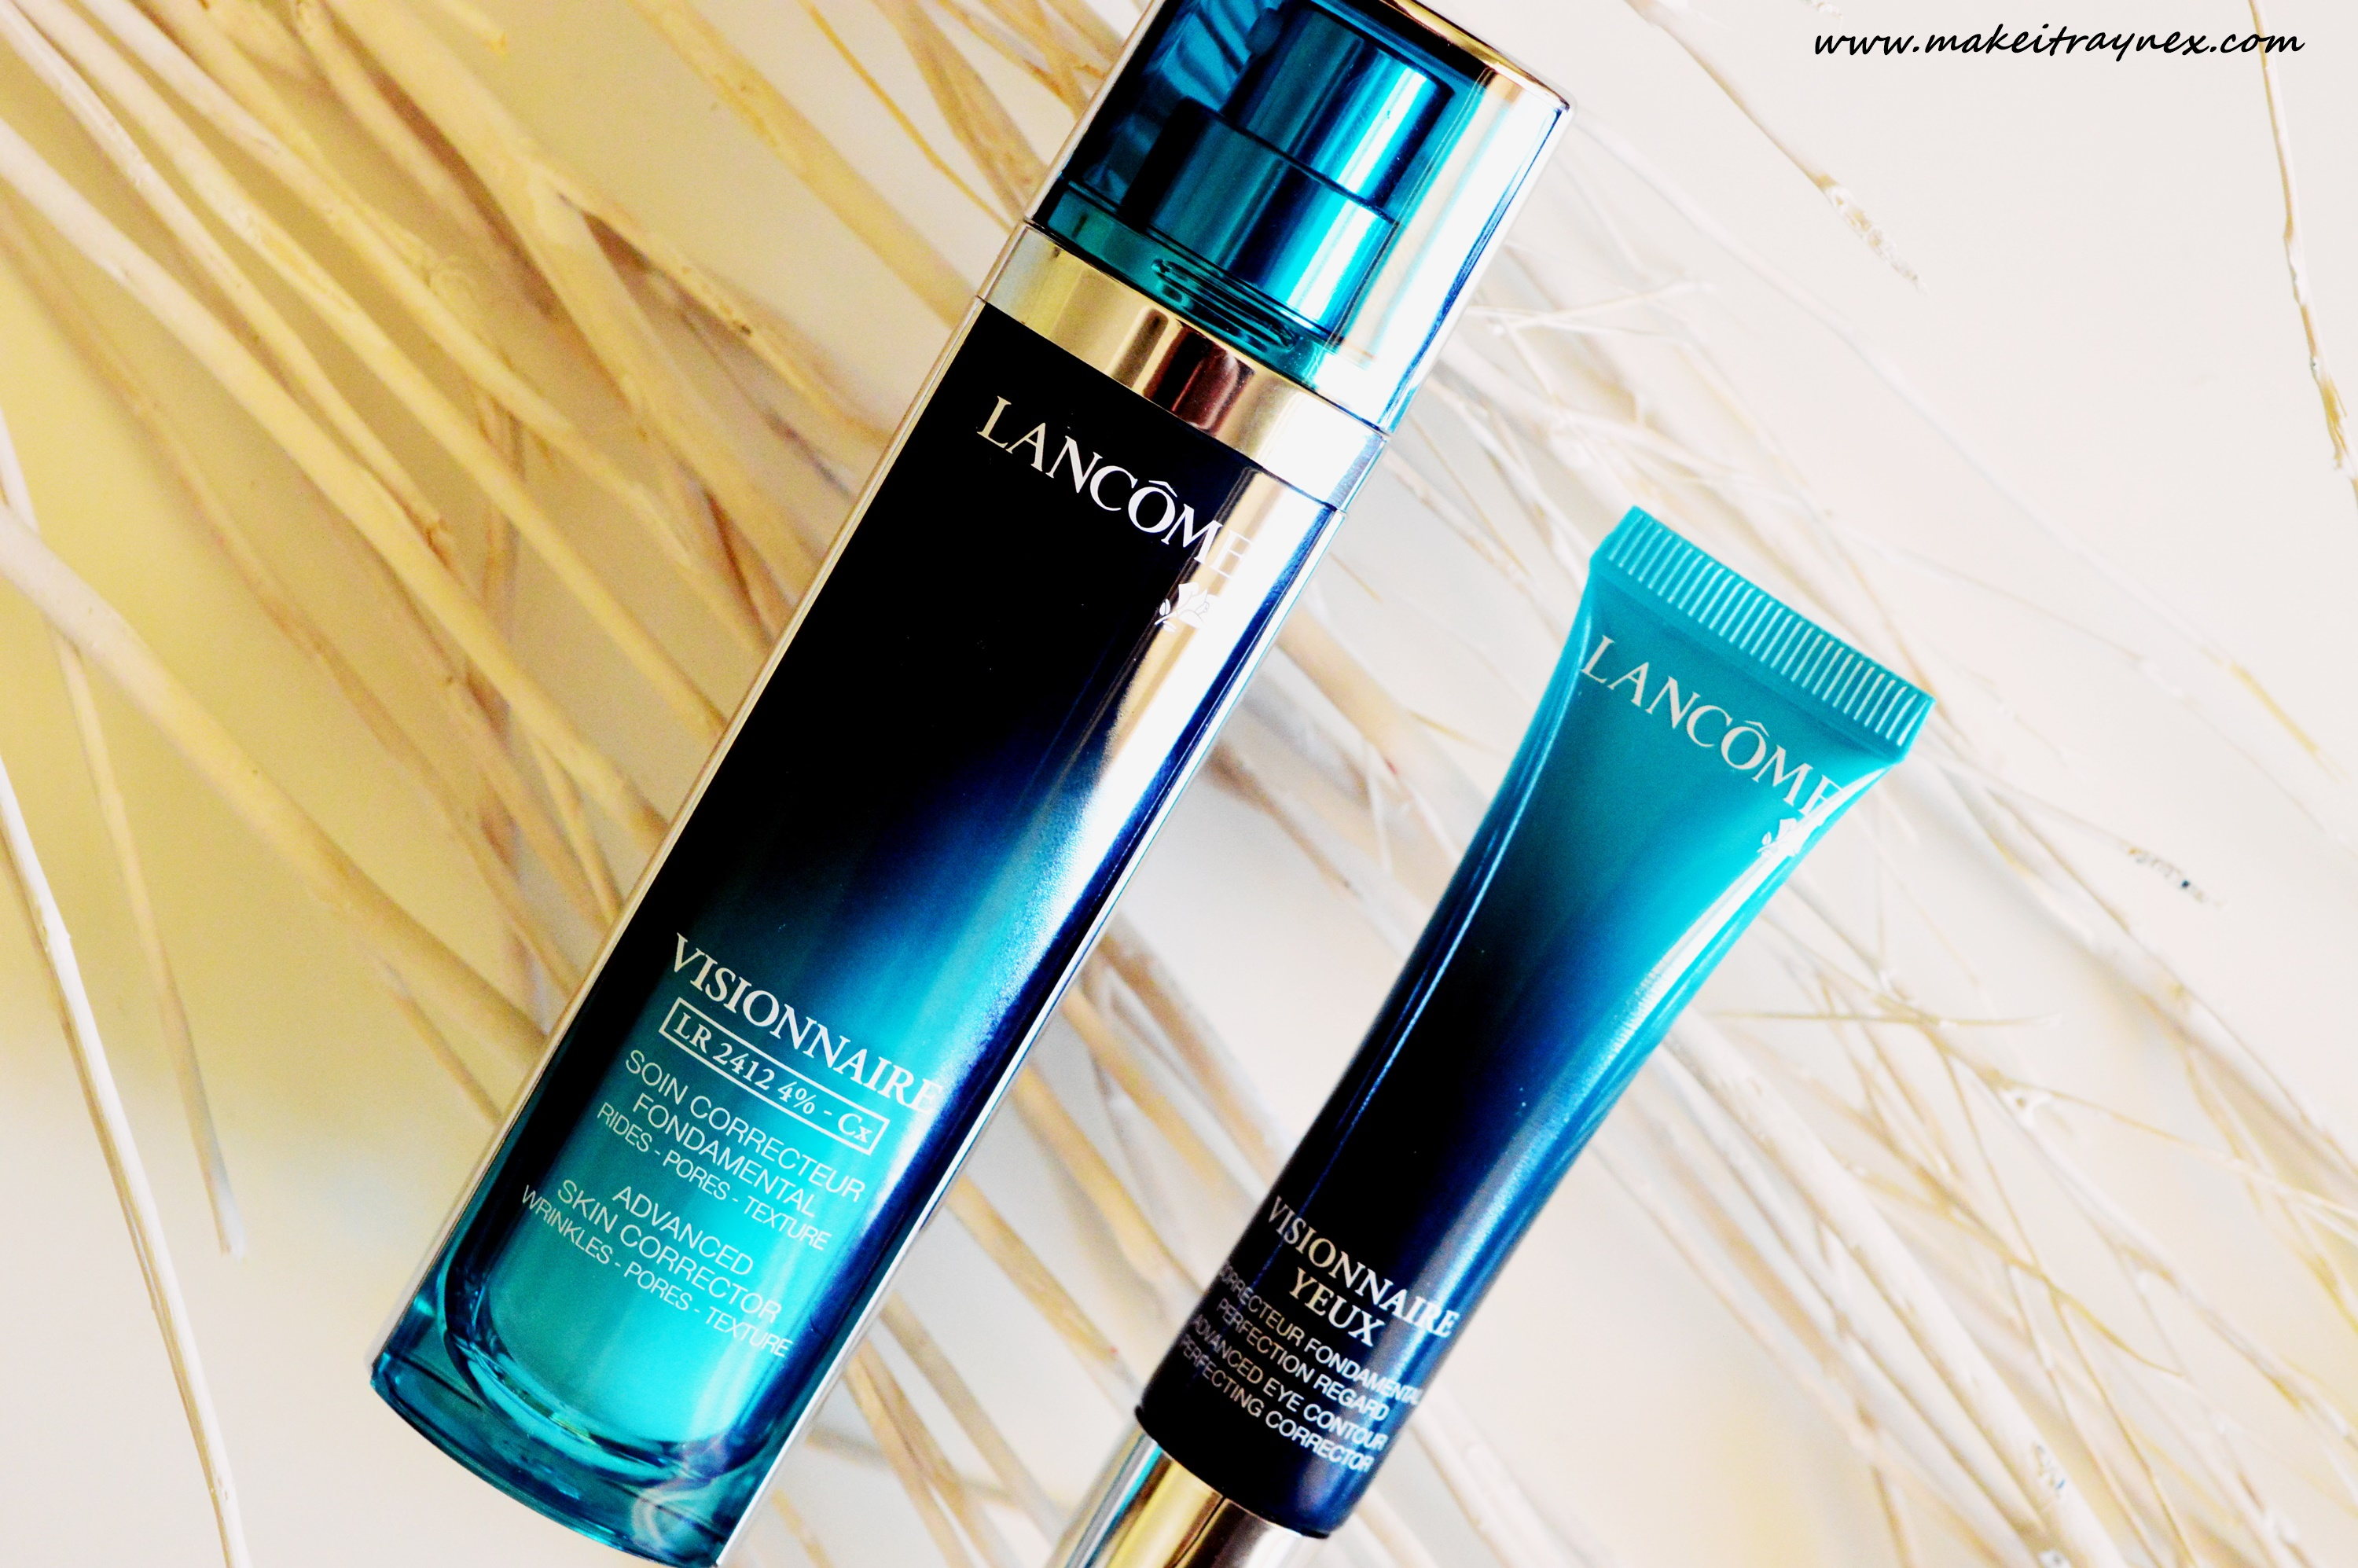 Lancôme Advanced Skin Corrector & Advanced Eye Contour Perfecting Corrector {LUXE REVIEW}